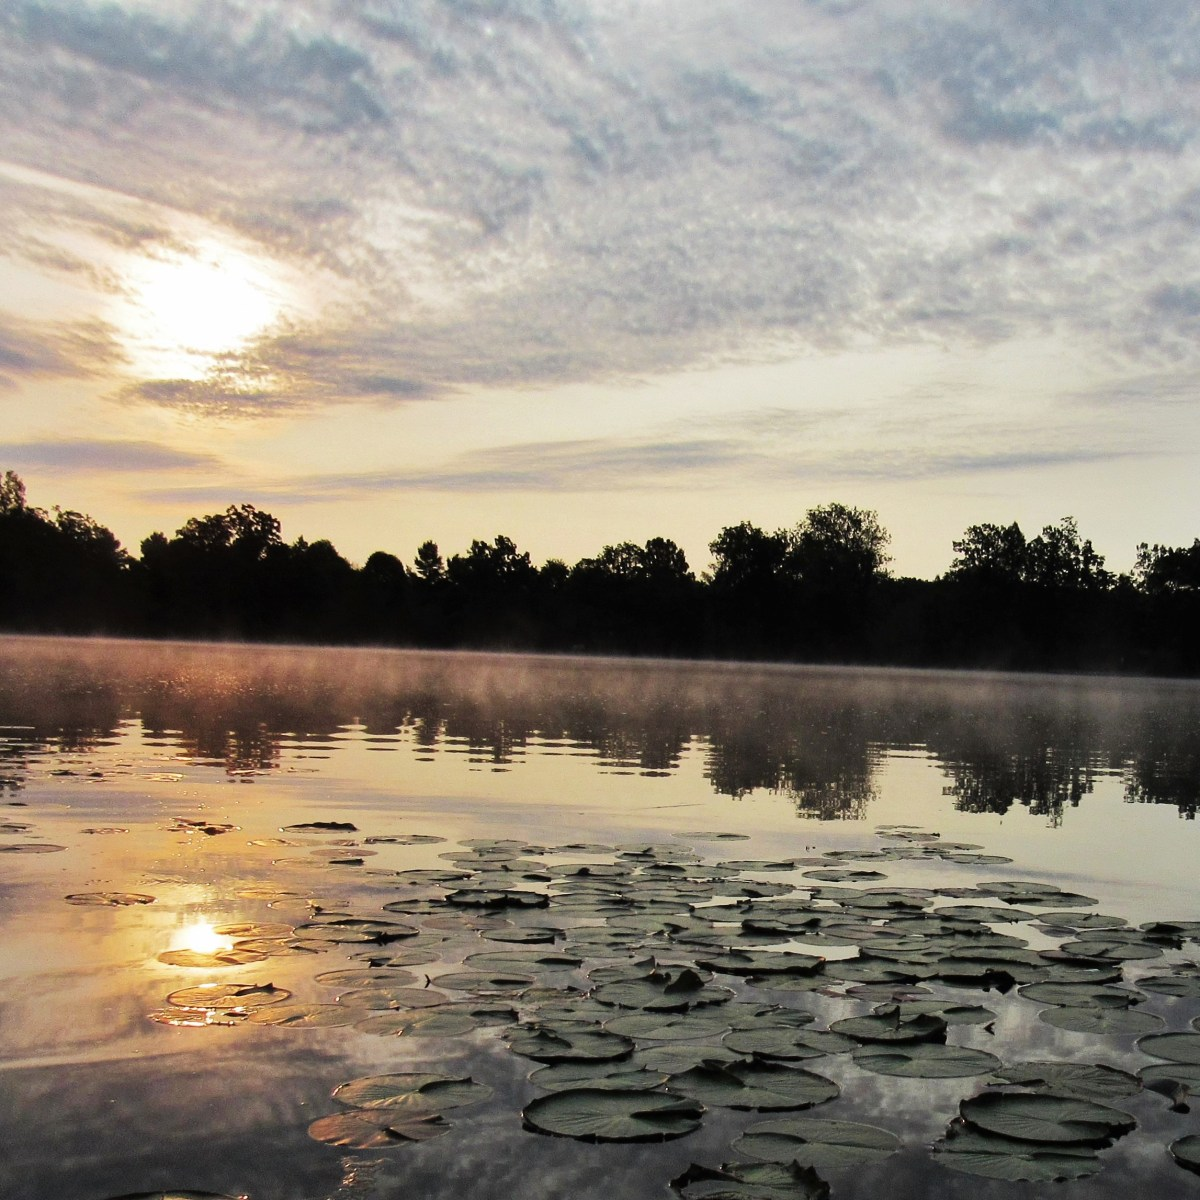 The sun and clouds reflect on a lake